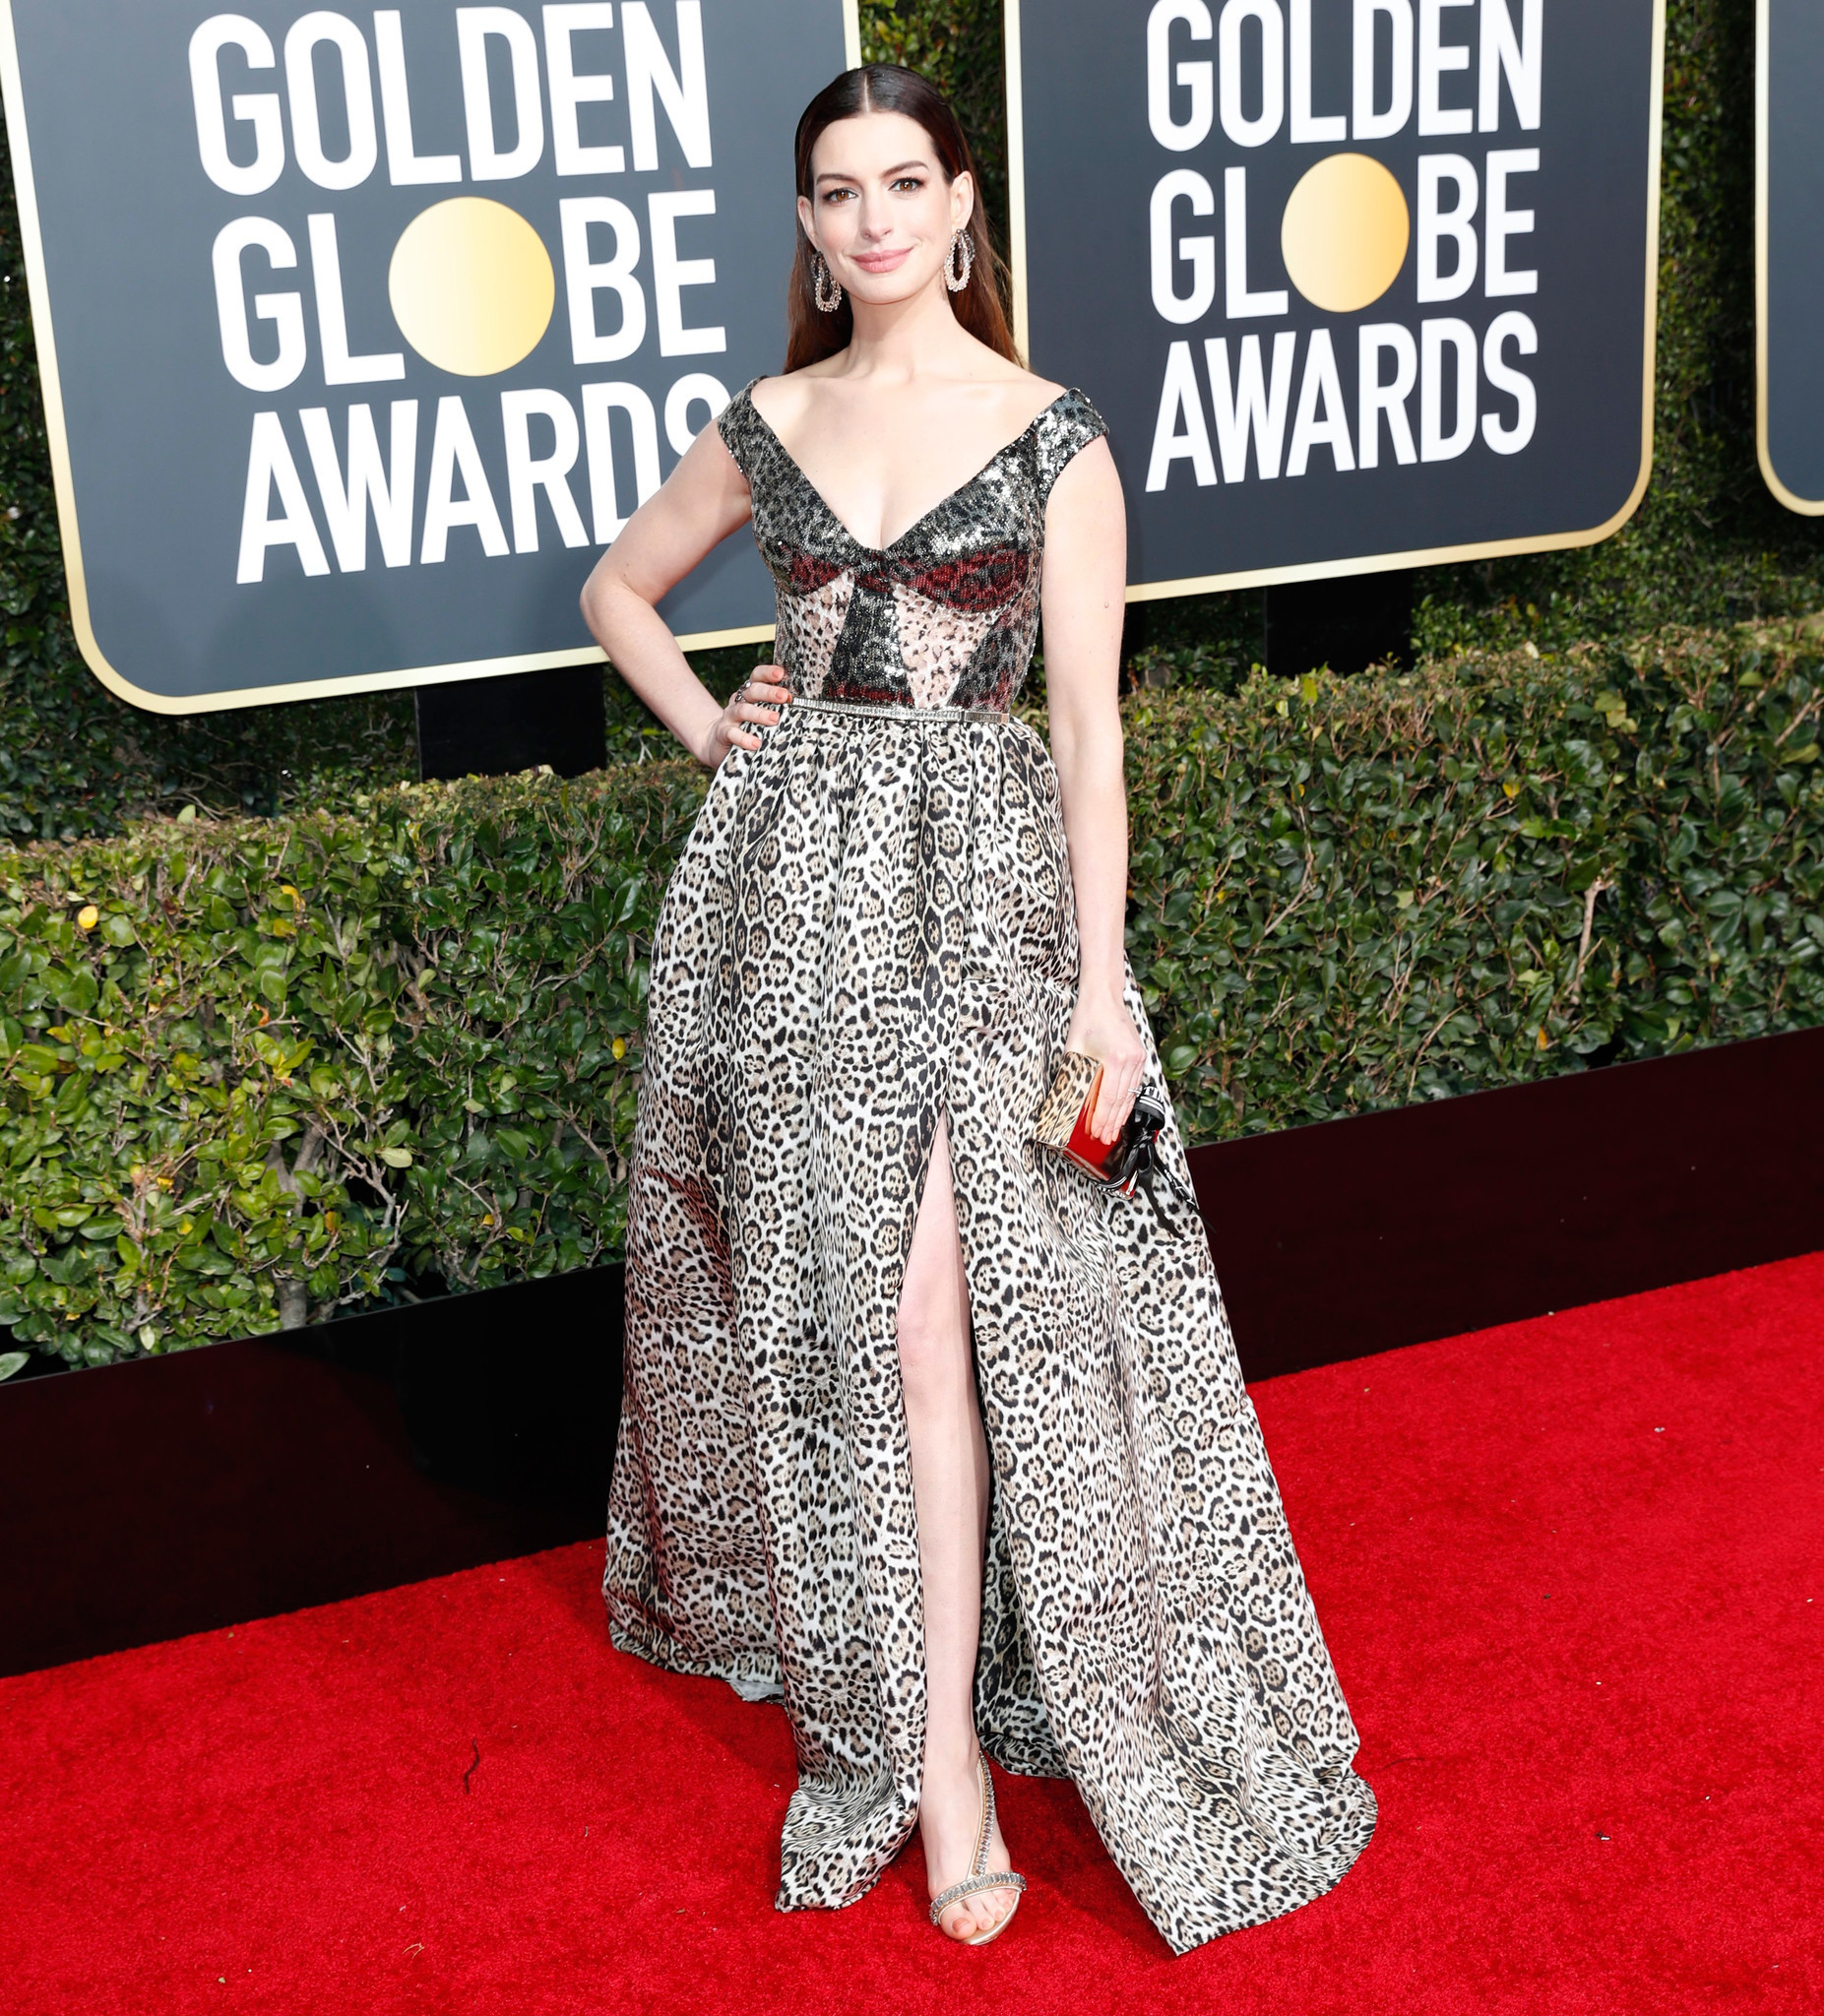 Golden Globes 2019: Worst-dressed